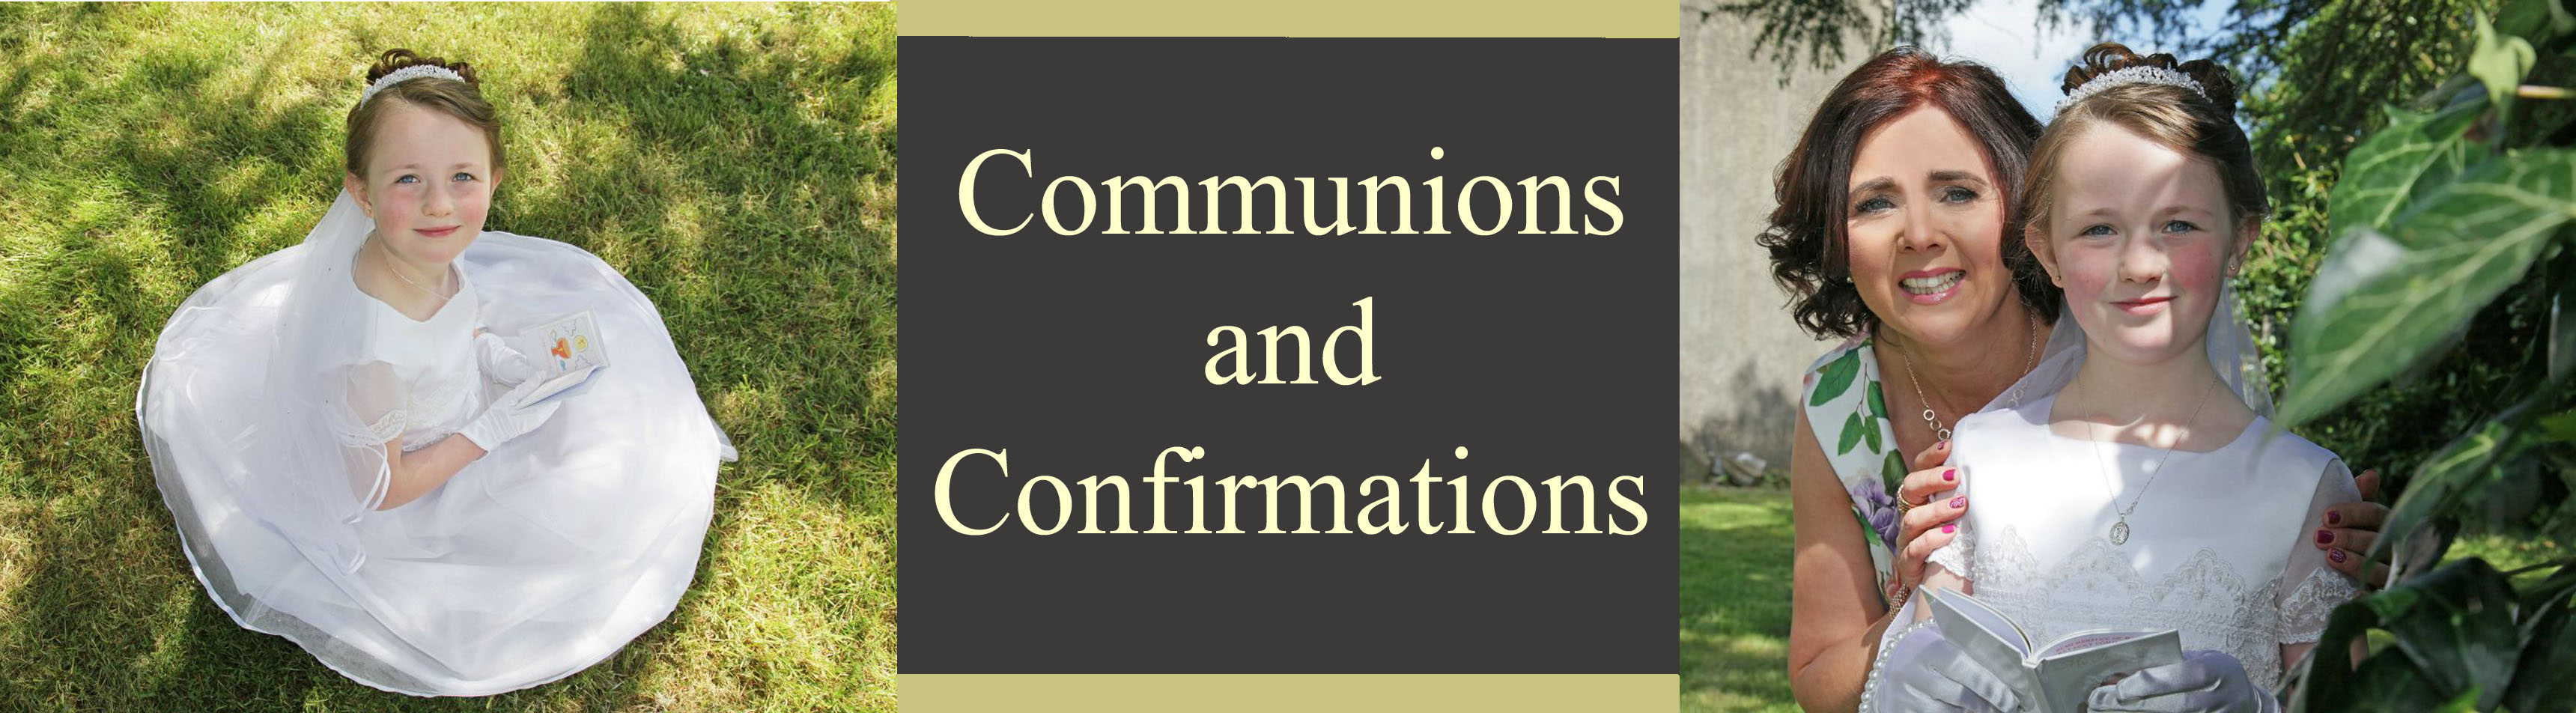 Communions and Confirmations